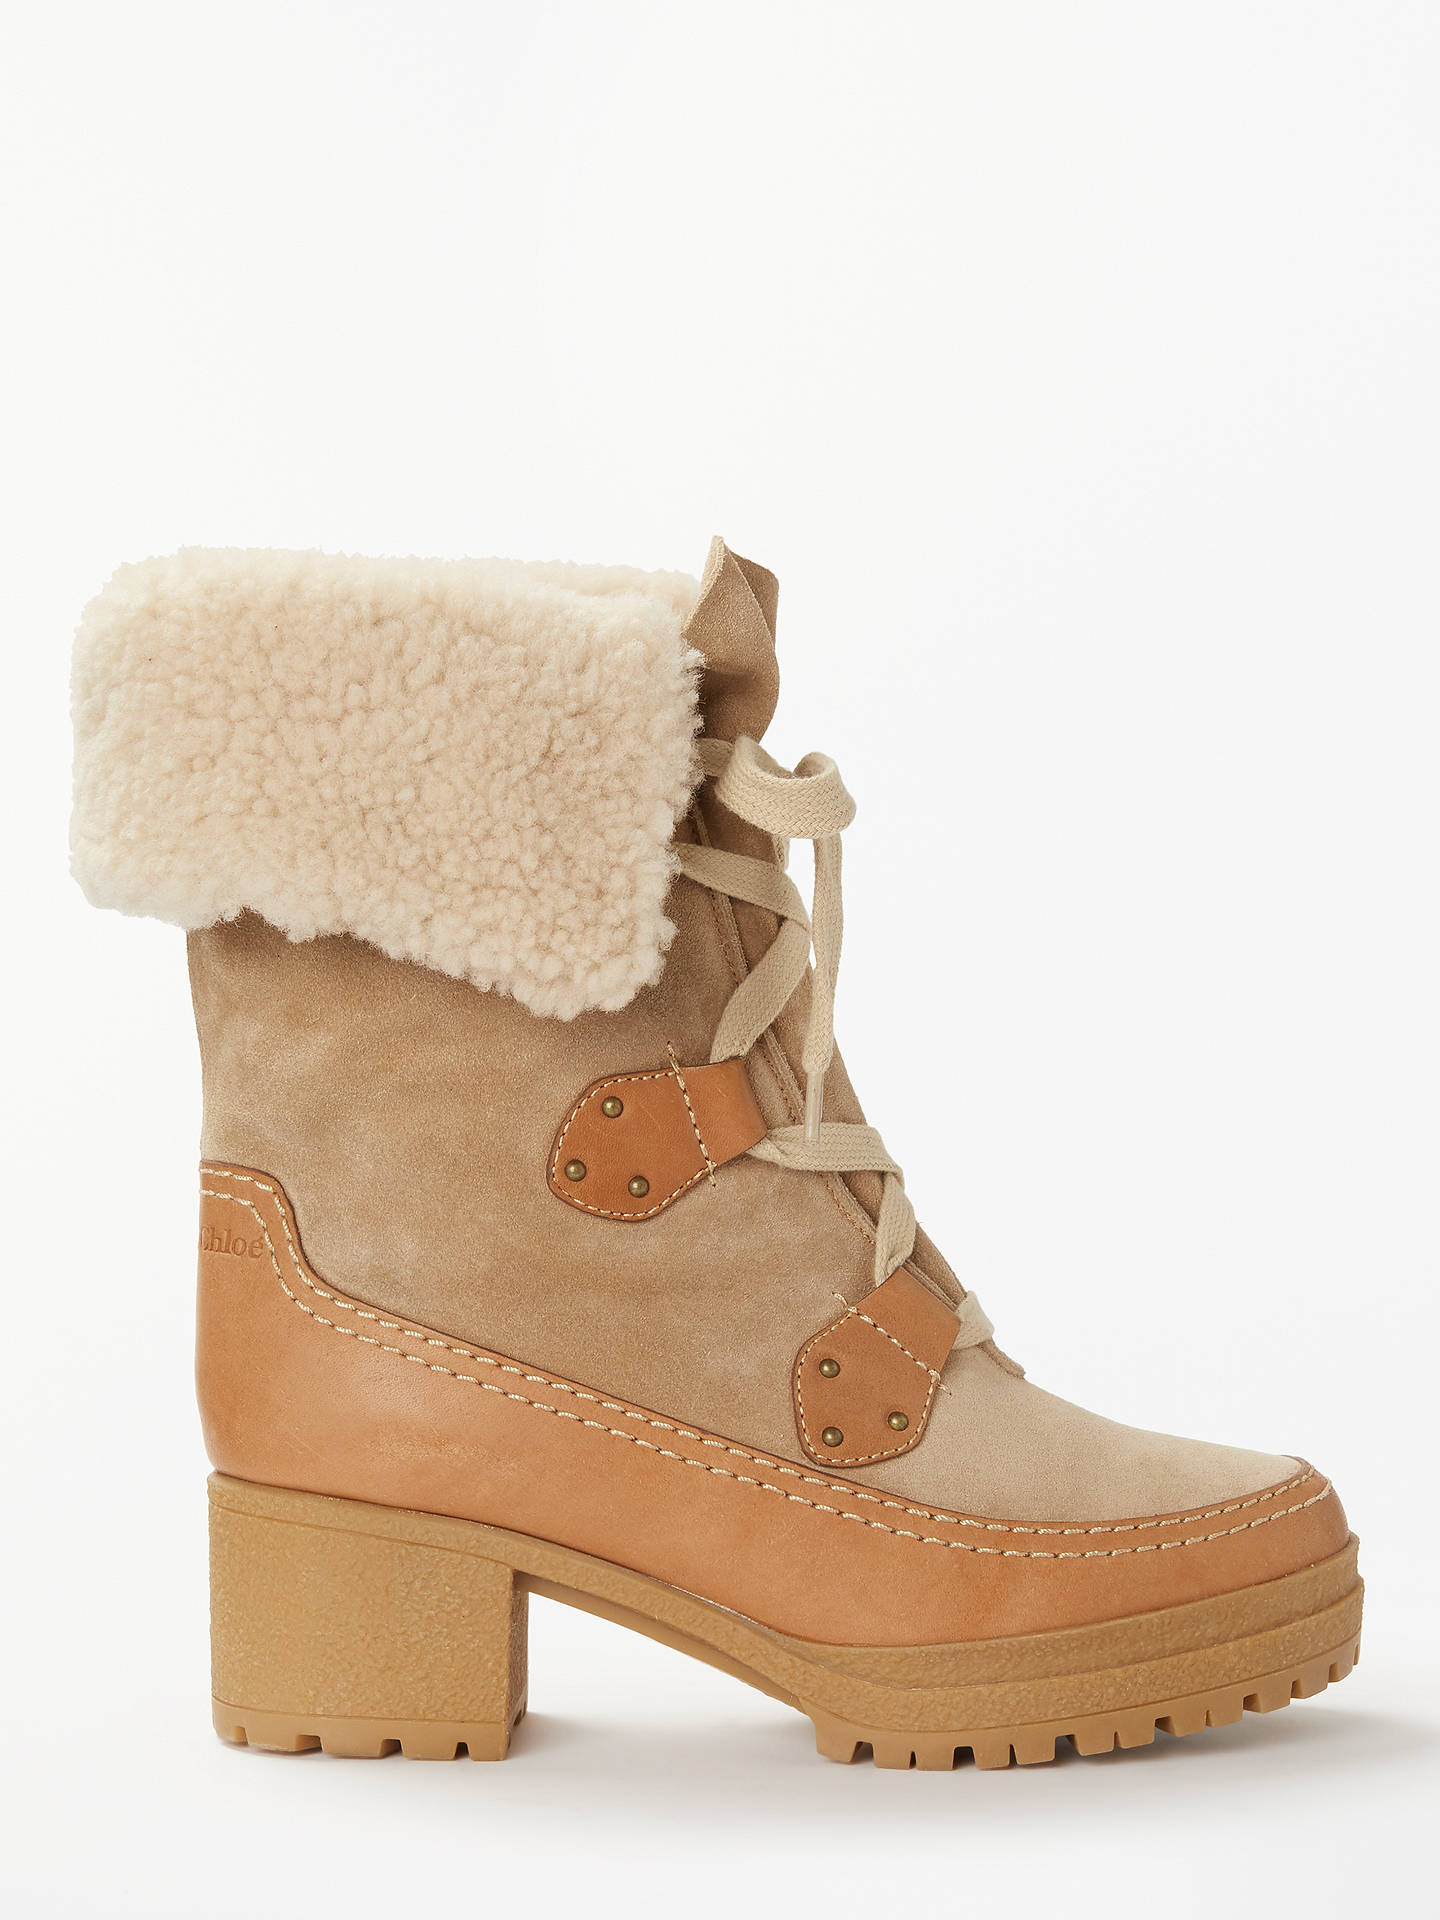 Buy See By Chloé Lace Up Block Heel Ankle Boots, Neutral Suede, 4 Online at johnlewis.com